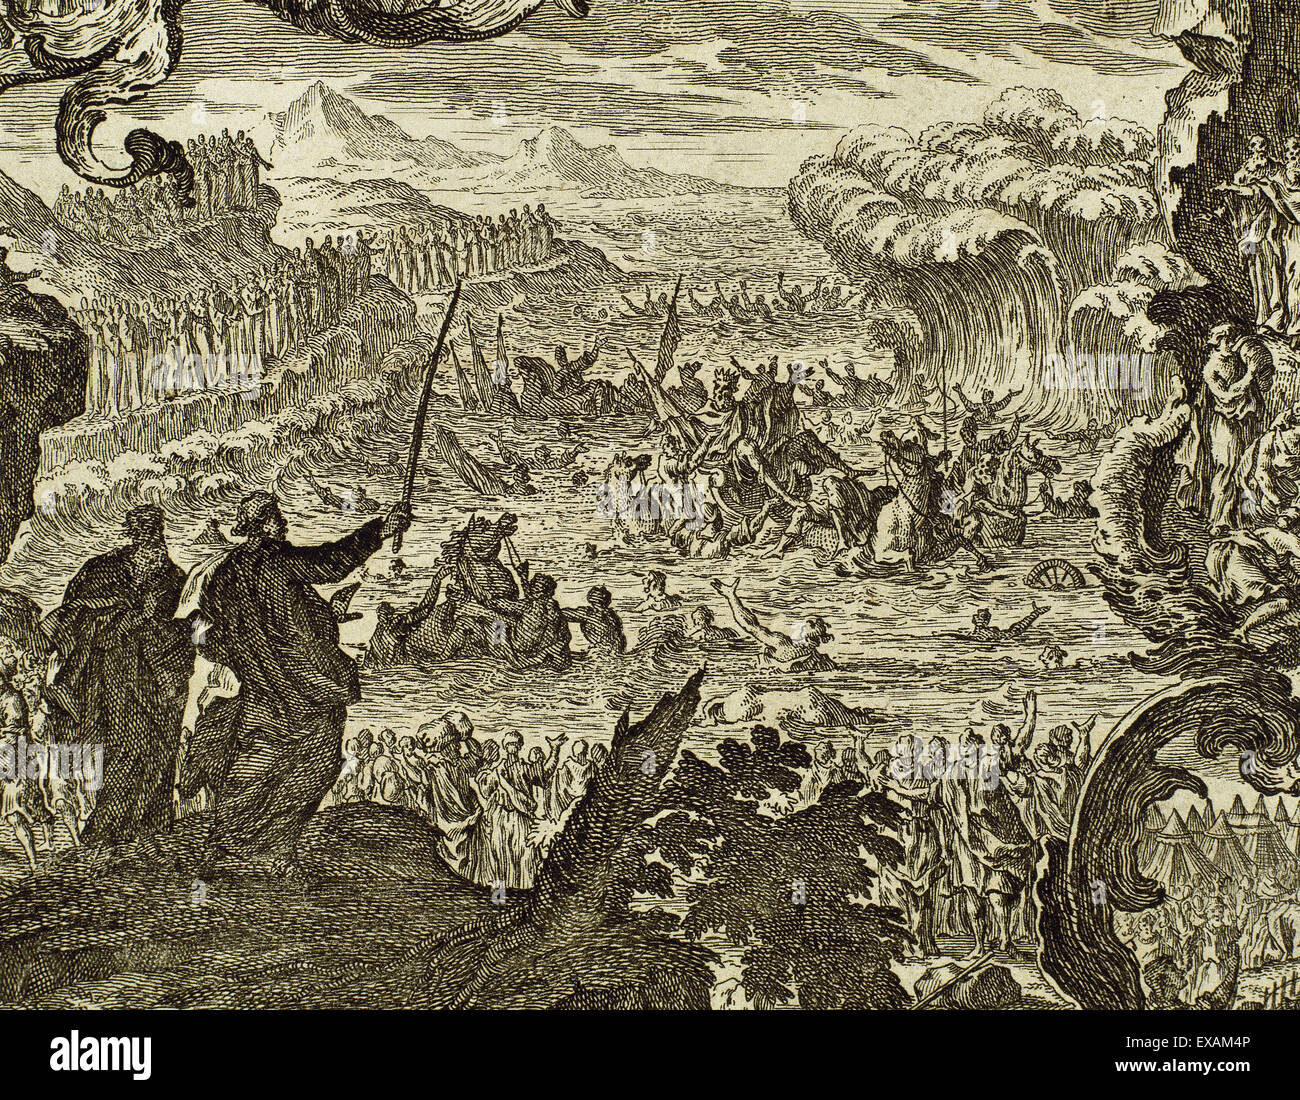 Parting of the waters of the Red Sea. Book of Exodus. Chapter 15, verse 1. Engraving. - Stock Image